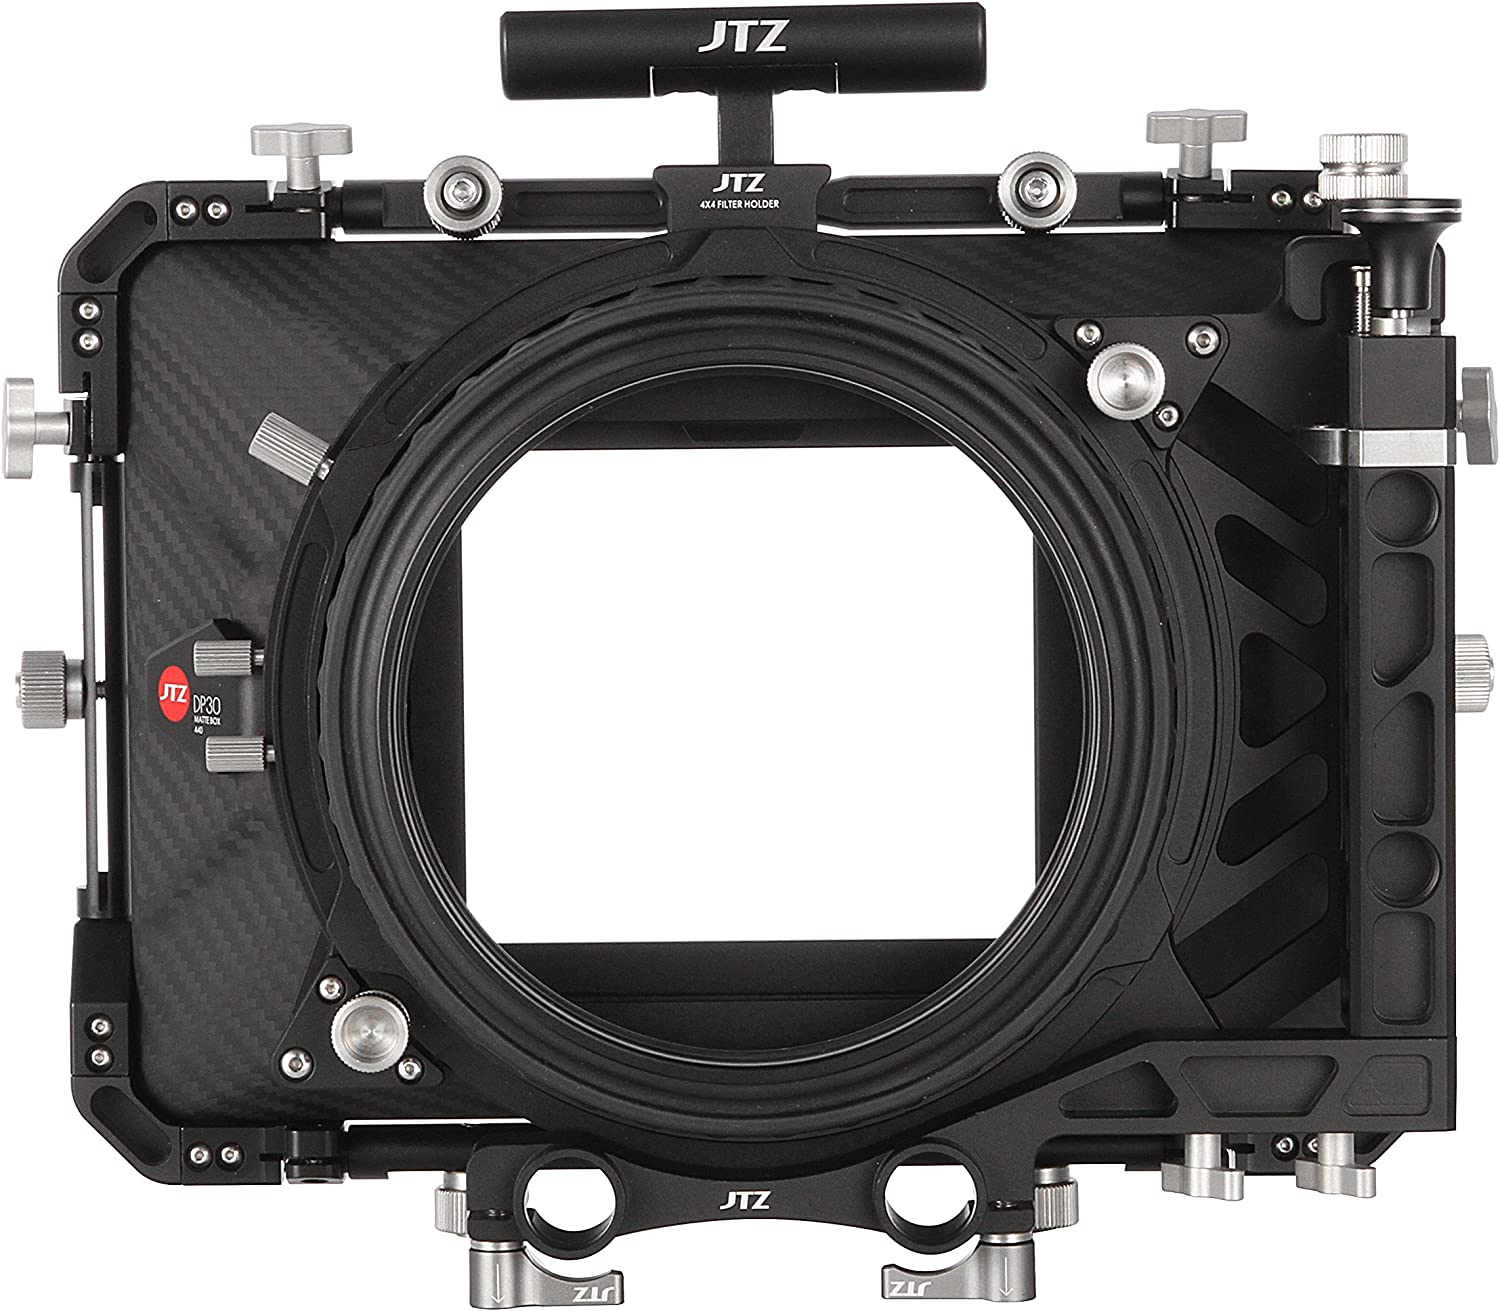 JTZ DP30 Cine Lens Carbon Fiber 4x4 Swing-Away Matte Box with 15mm//19mm Rod Rail Rig for Sony FS5 FS7 ARRI RED Canon C100 C200 C300 BM D Blackmagic BMPCC BMCC Pocket Cinema Panasonic Camera